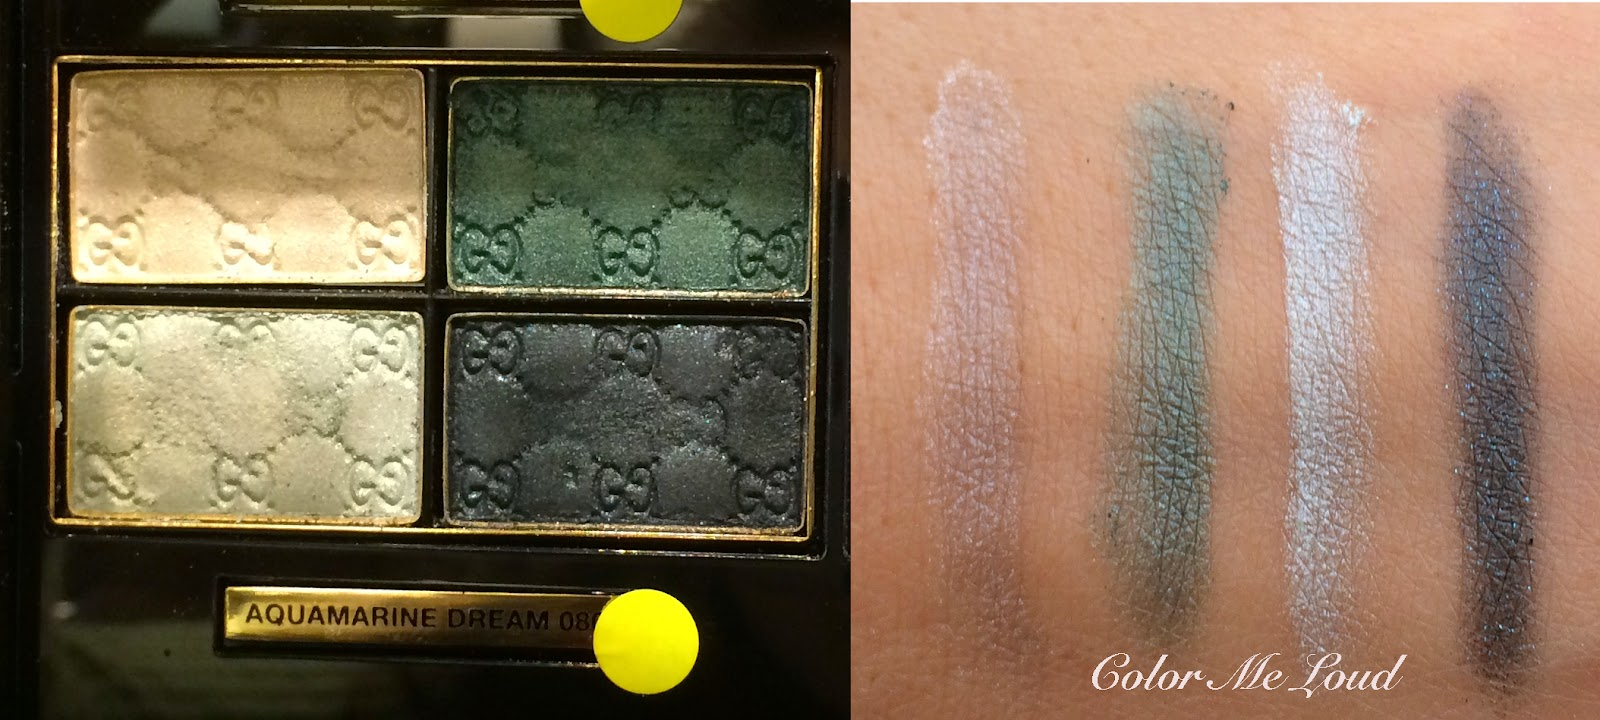 Swatch: Gucci Magnetic Color Eye Shadow Quad in Aquamarine Dream